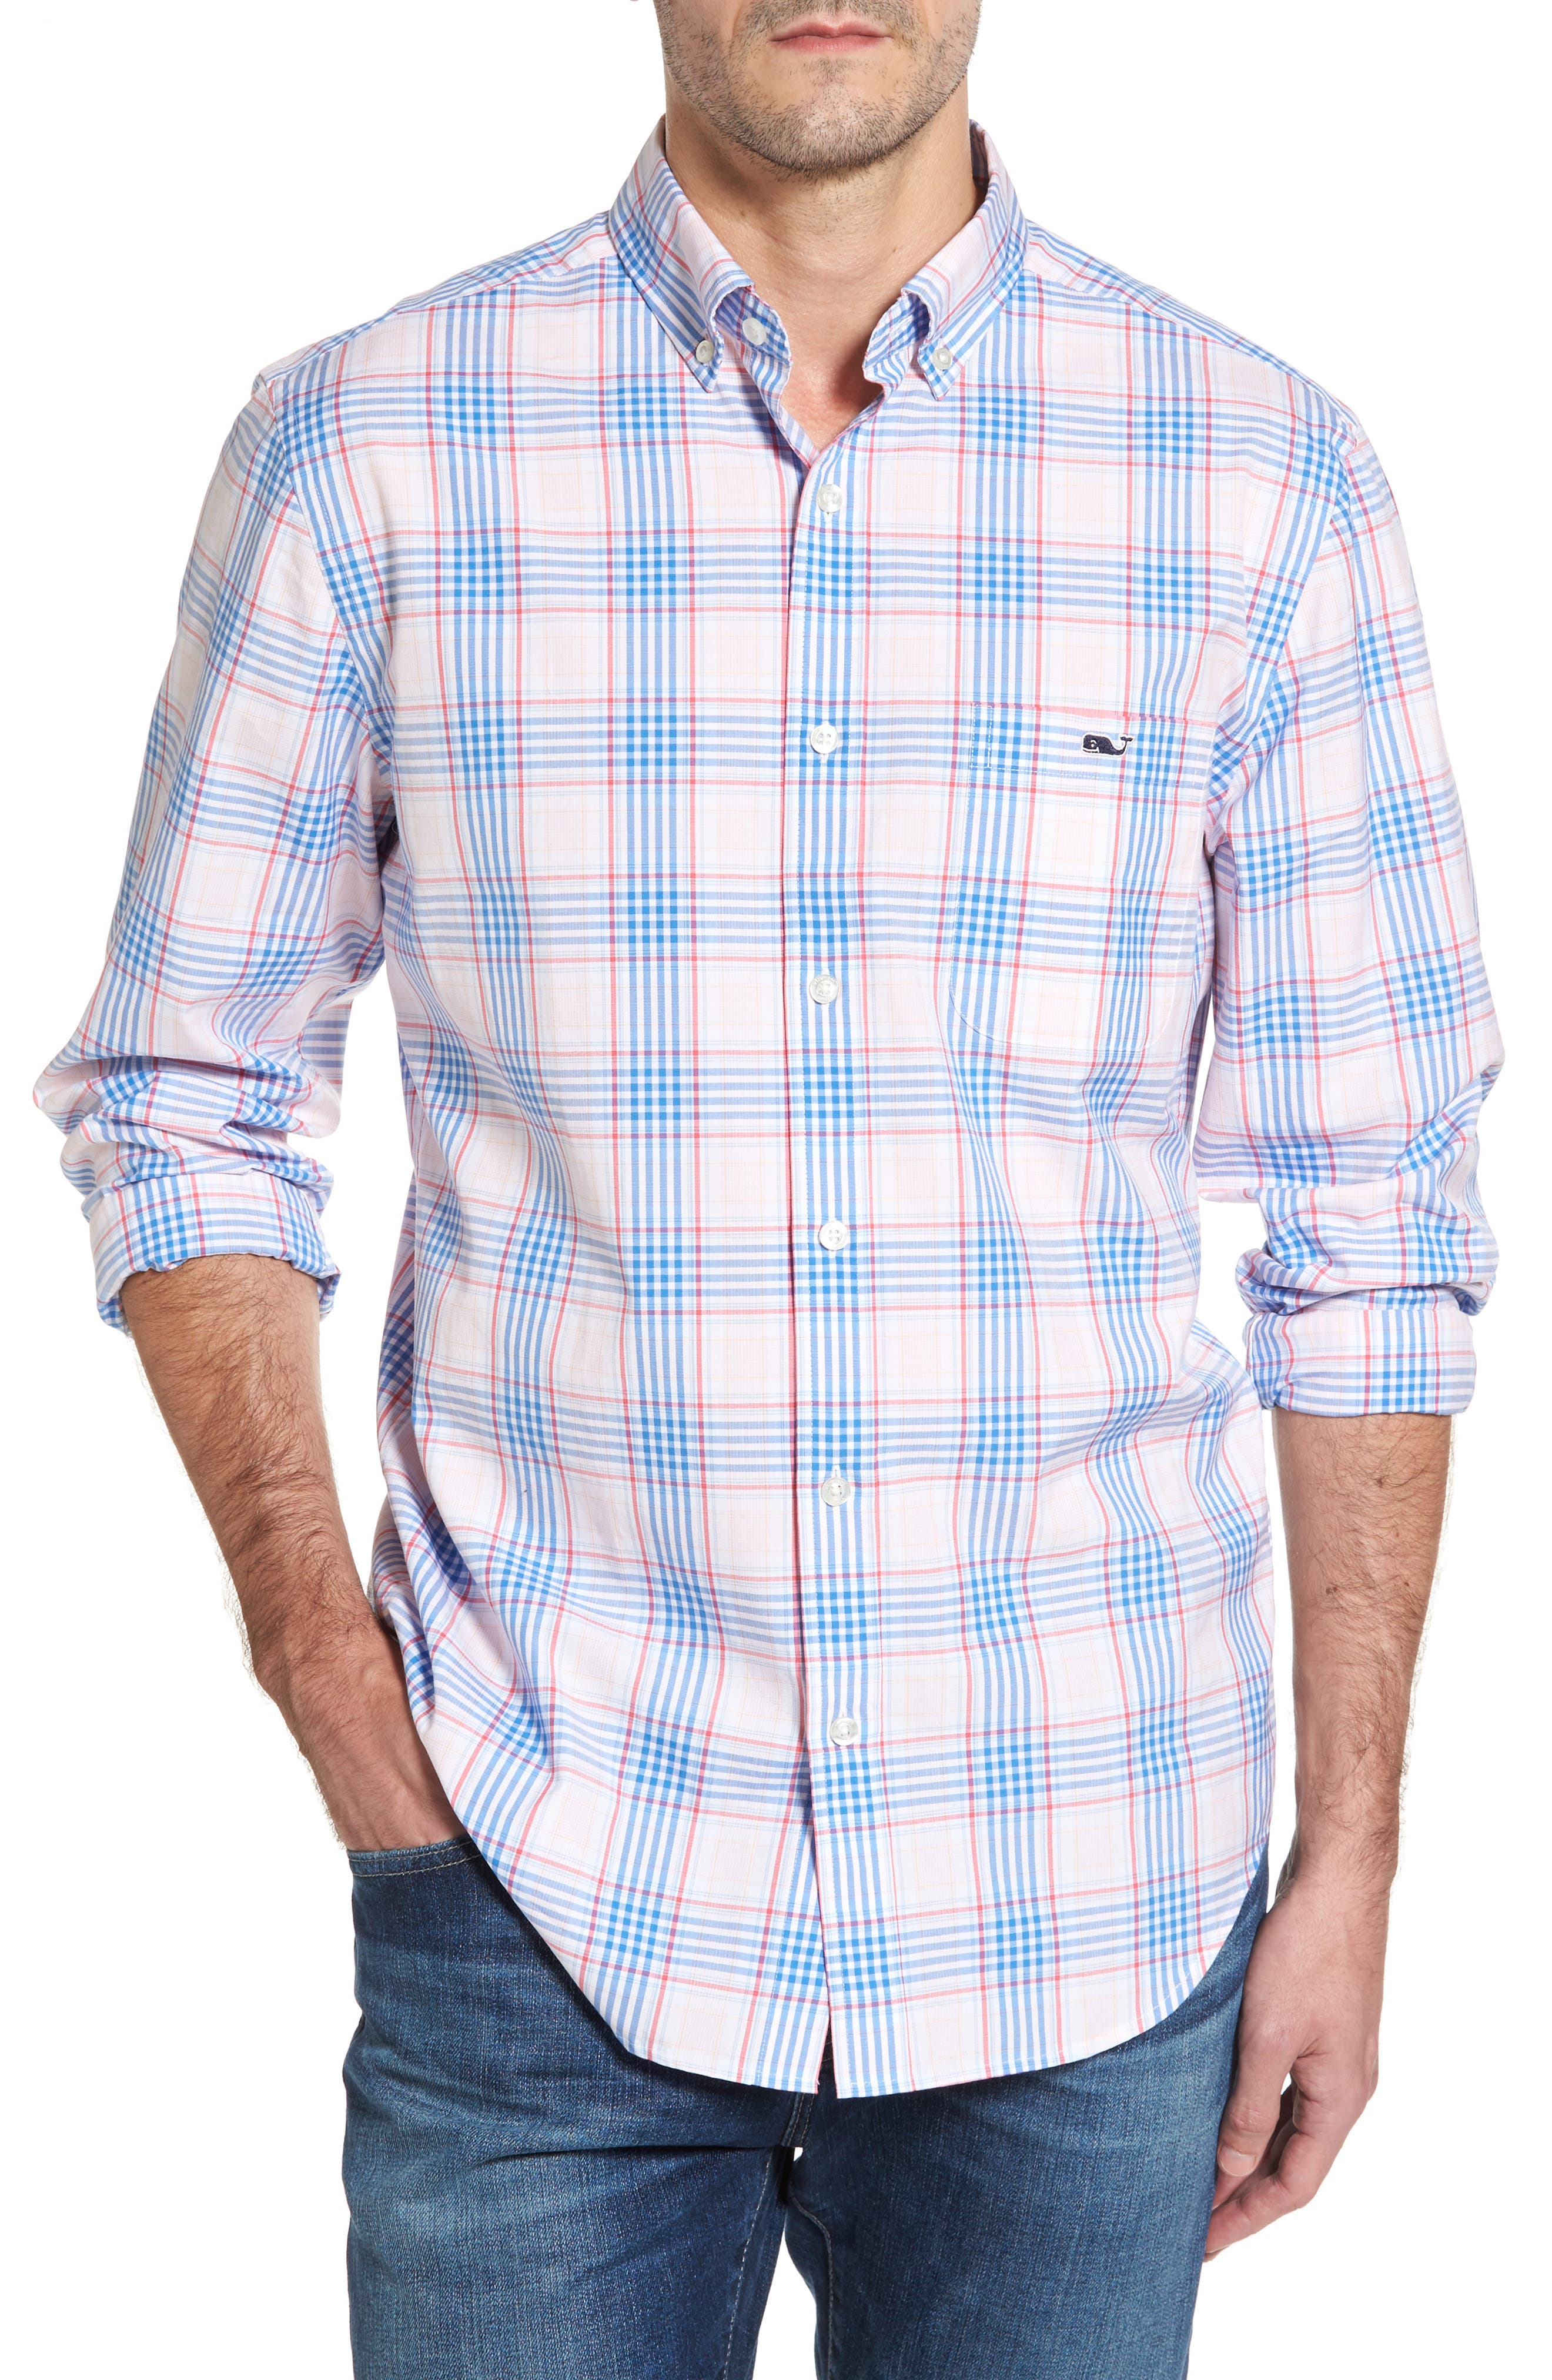 Pelican Plaid Tucker Classic Fit Sport Shirt,                             Main thumbnail 1, color,                             Rose Pink